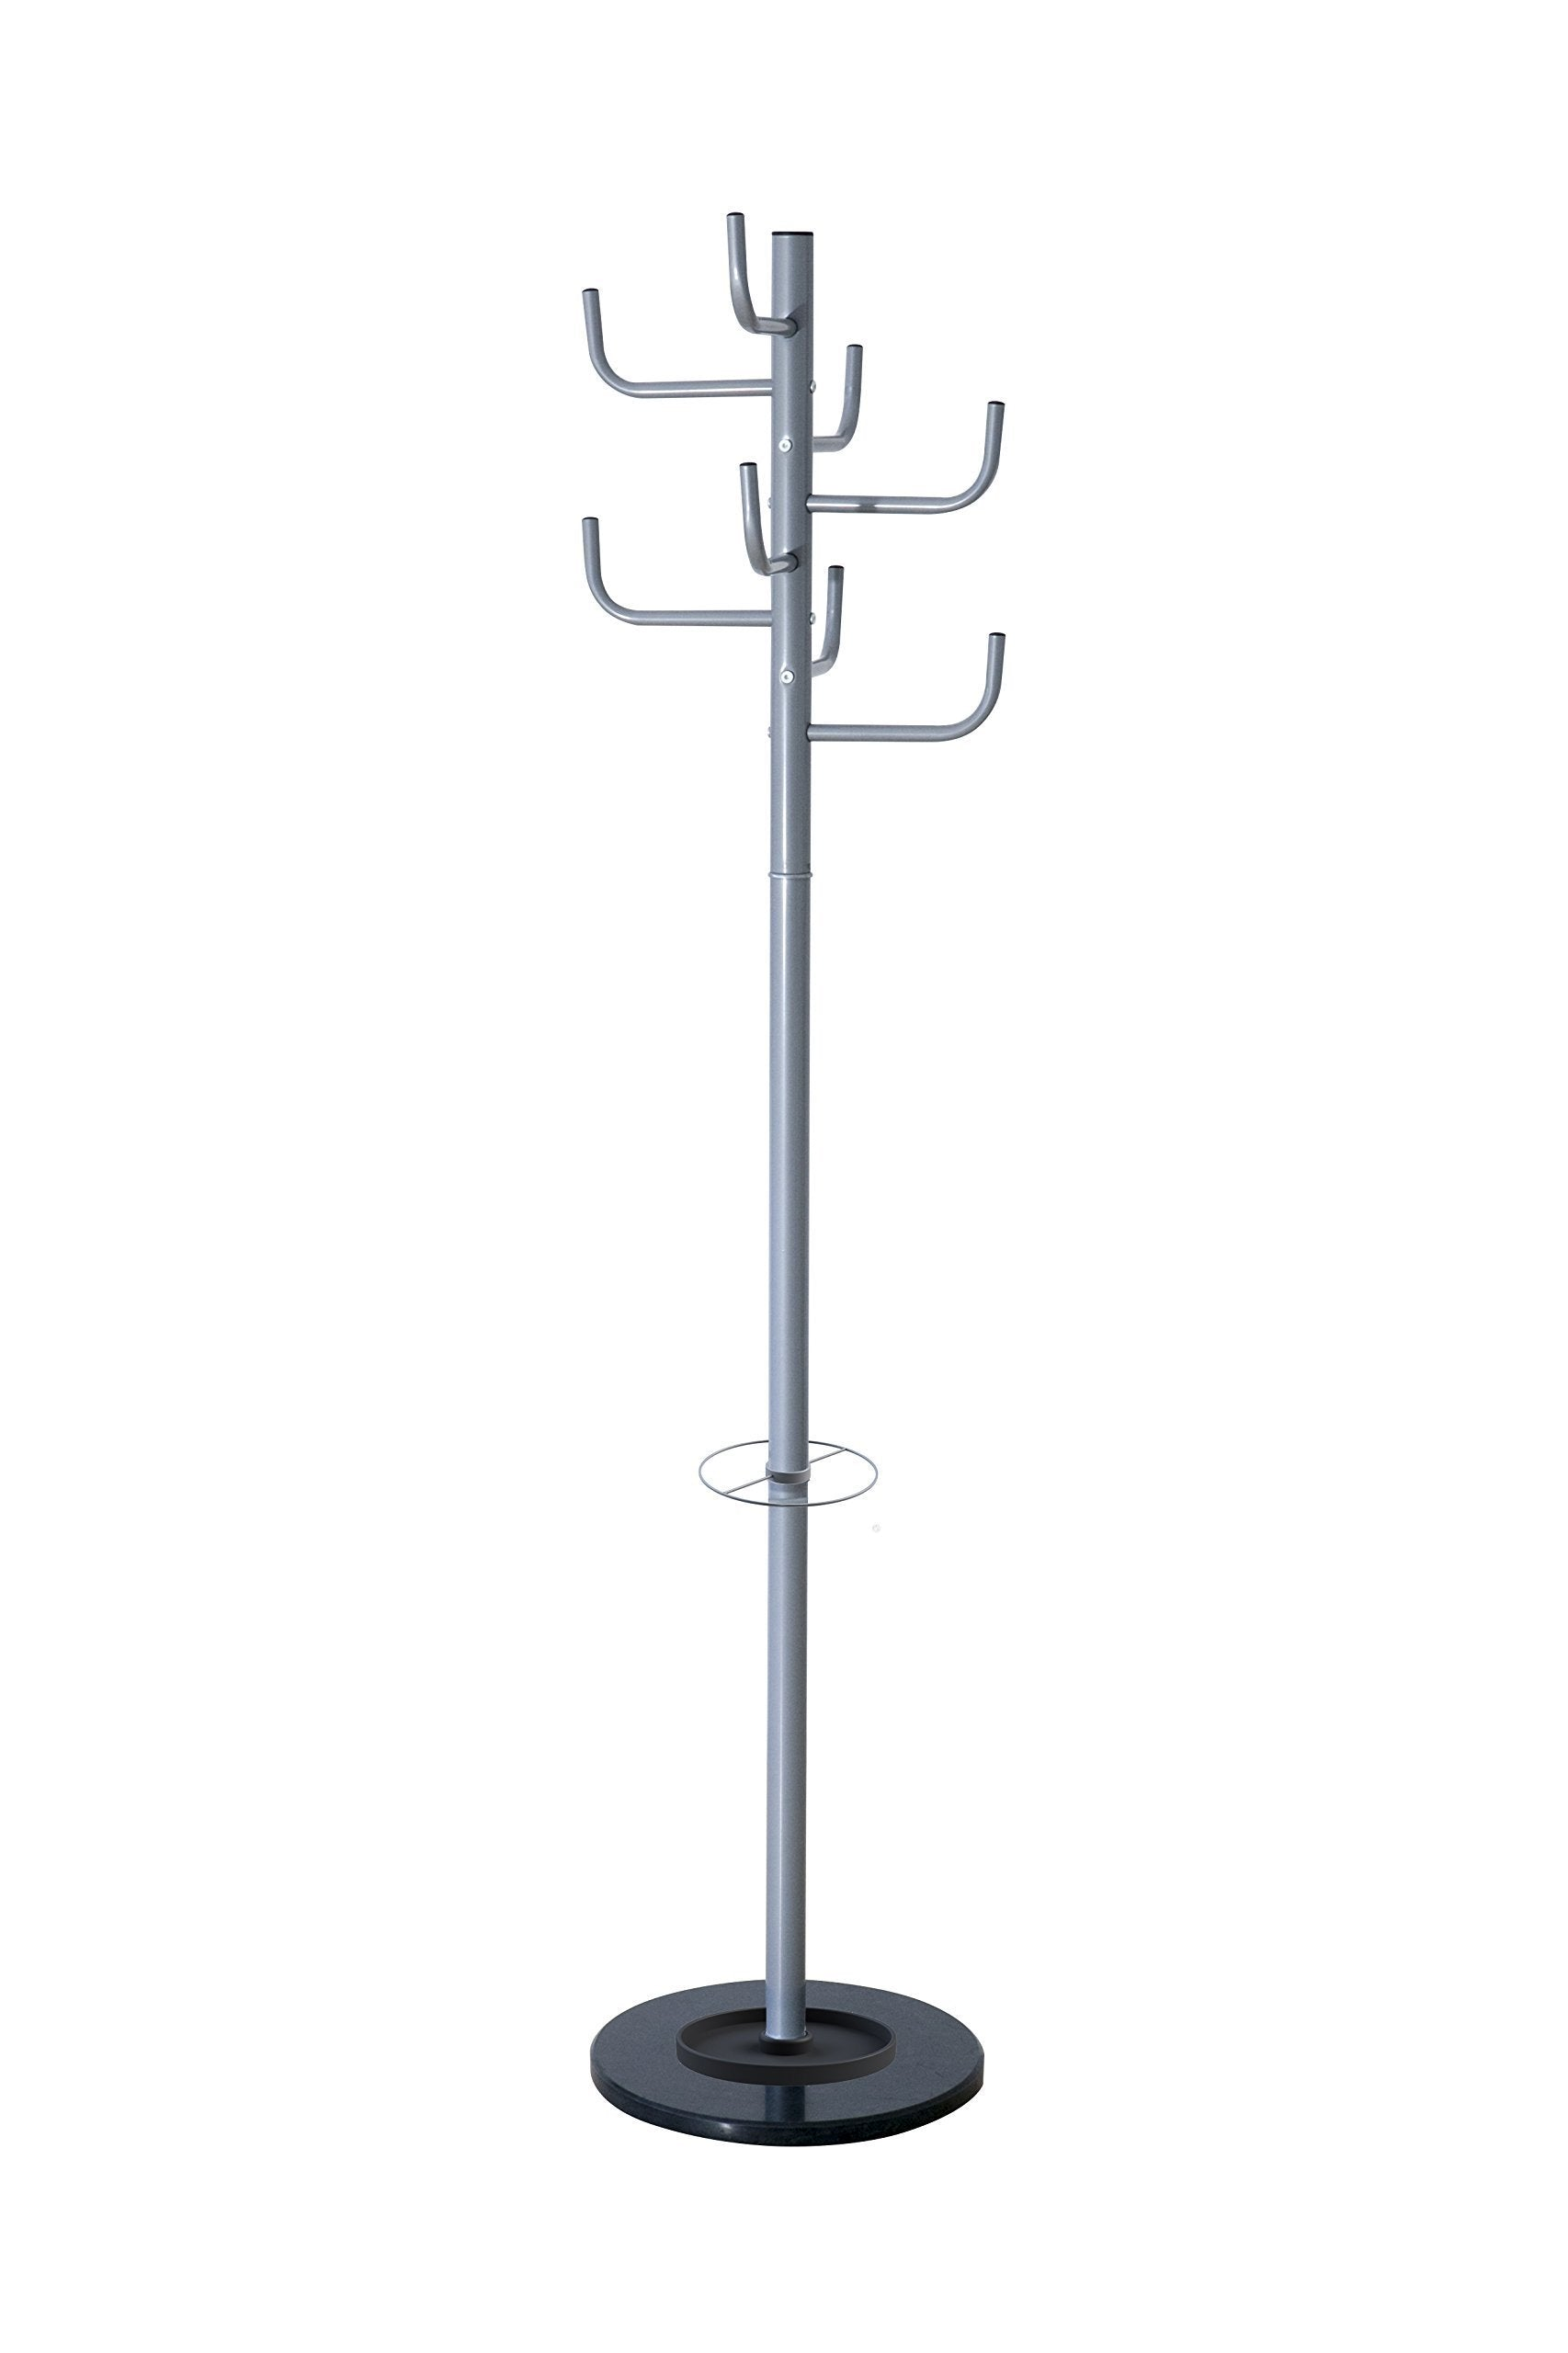 Top rated paperflow cactus coat rack stand with eight pegs aluminum 68 x 15 pt006 35